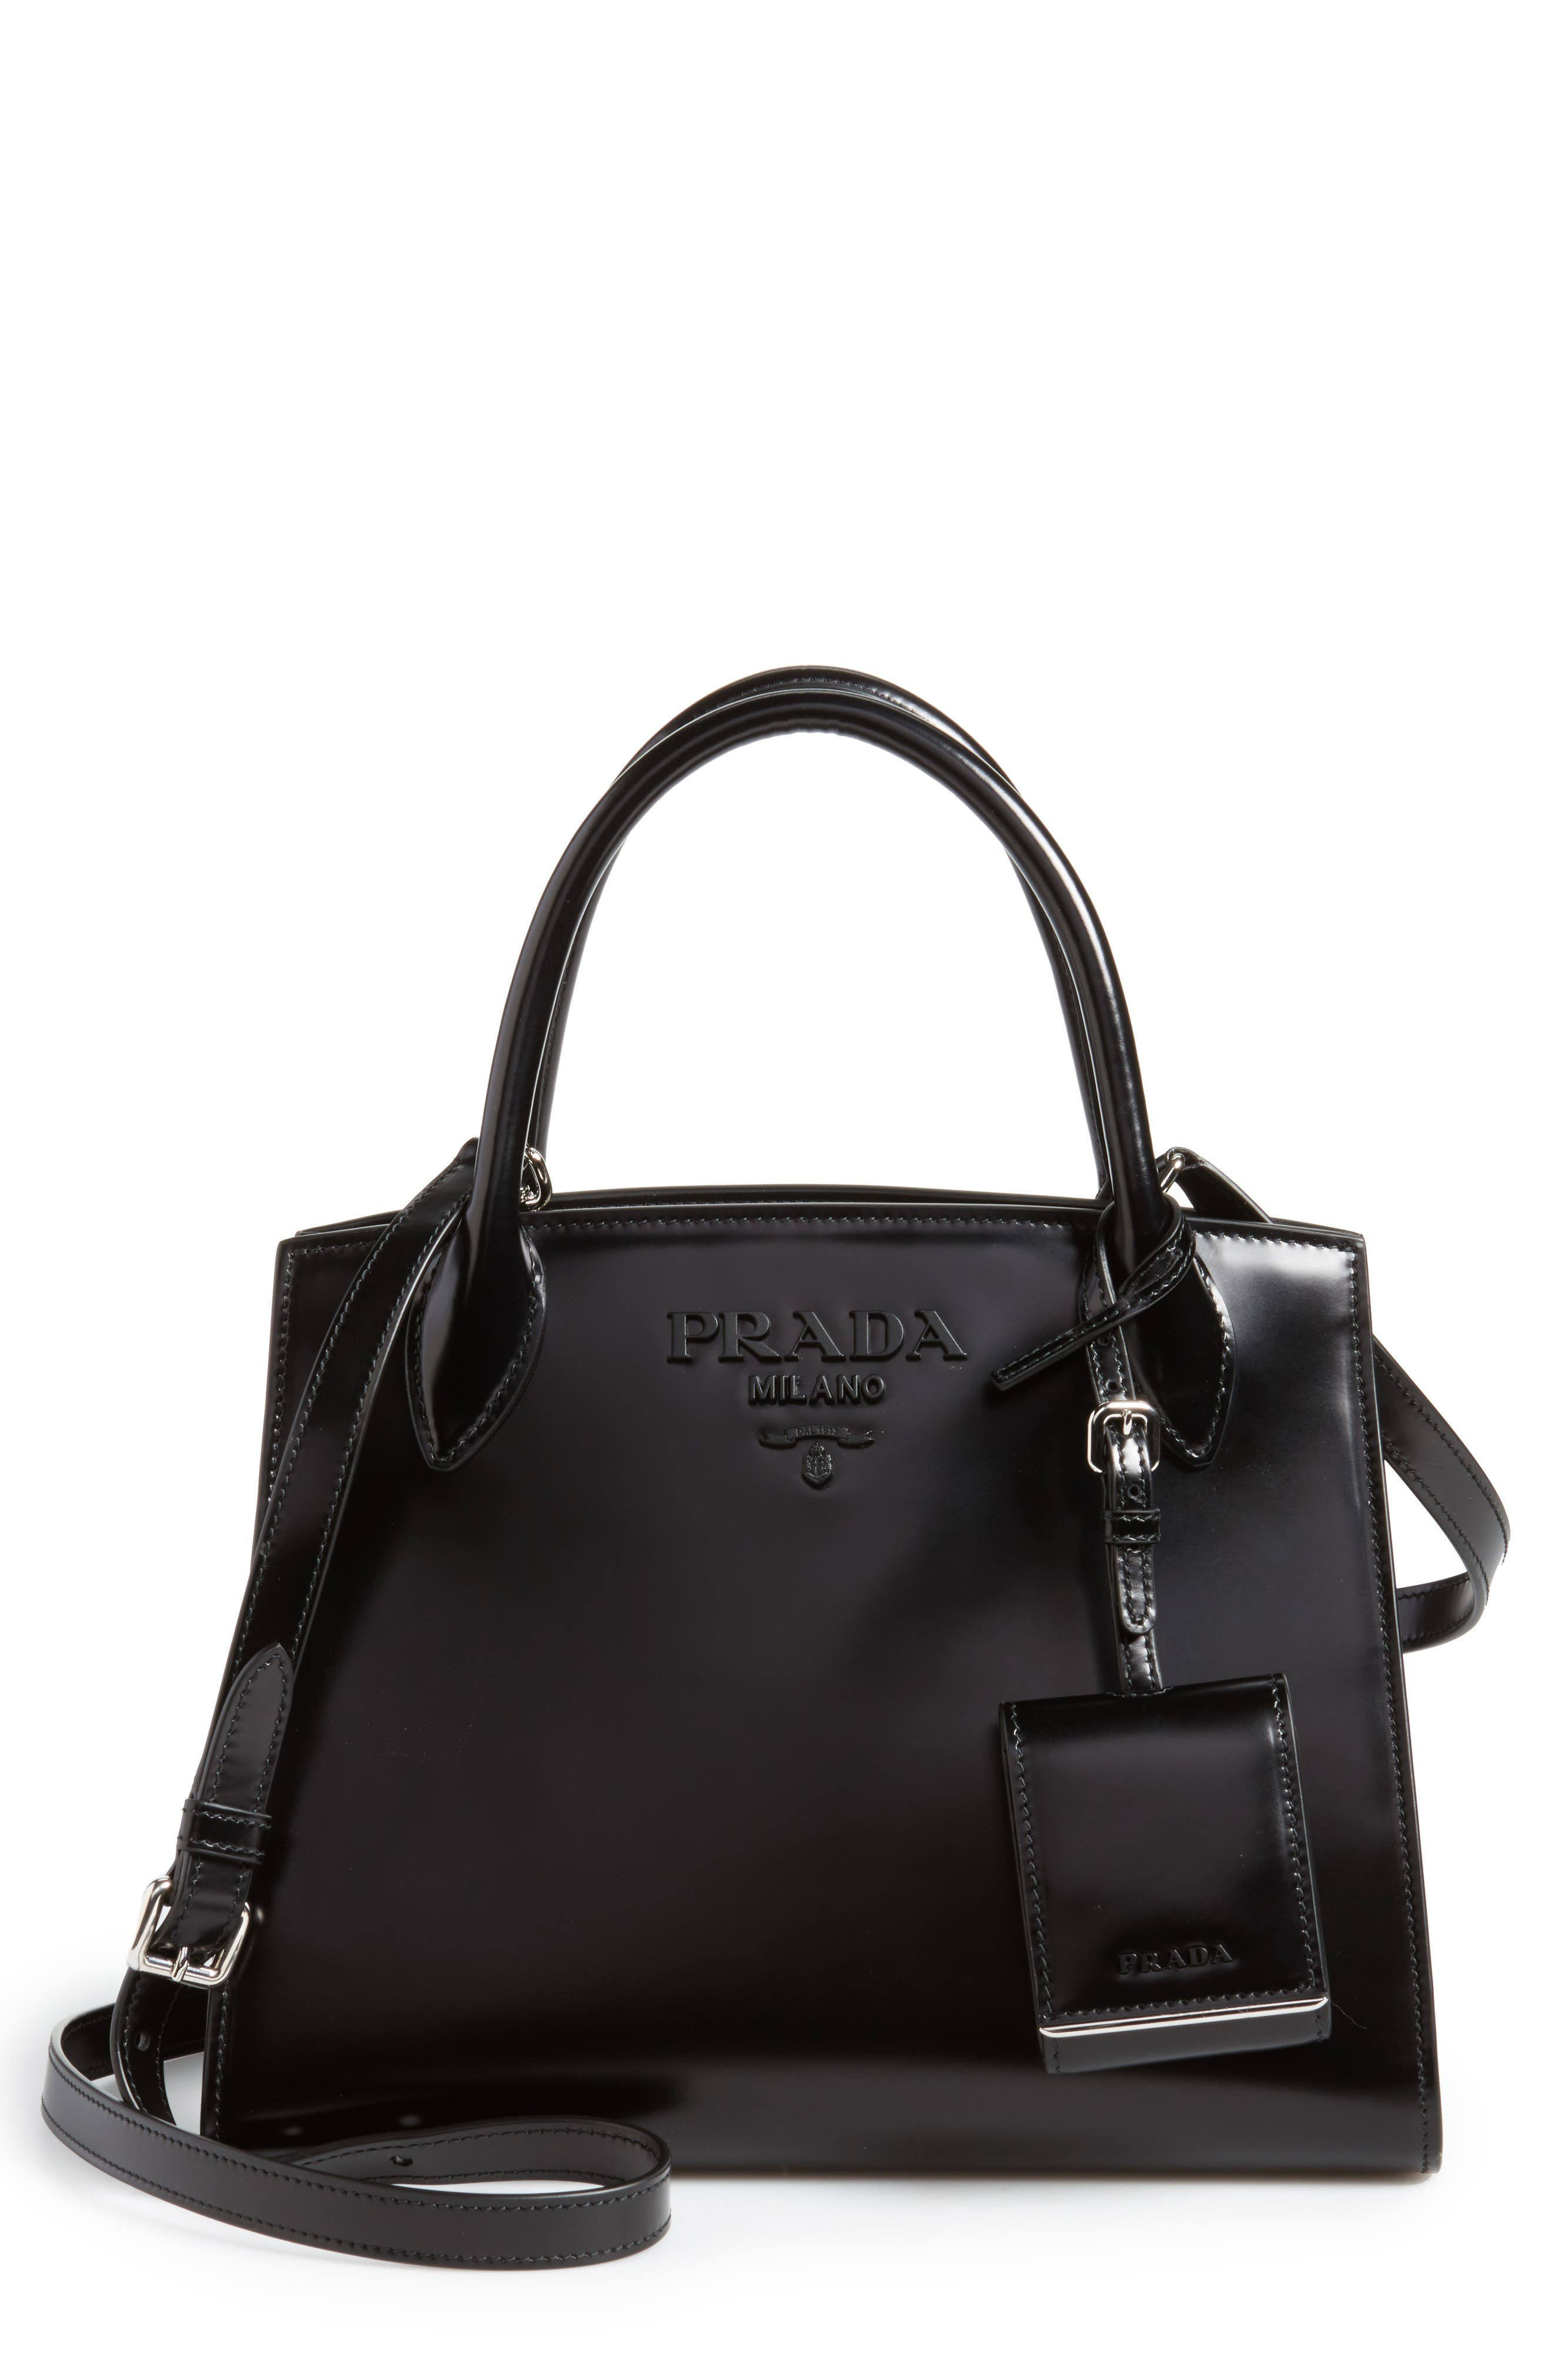 Alternate Image 1 Selected - Prada Small Monochrome Spazzolato Tote